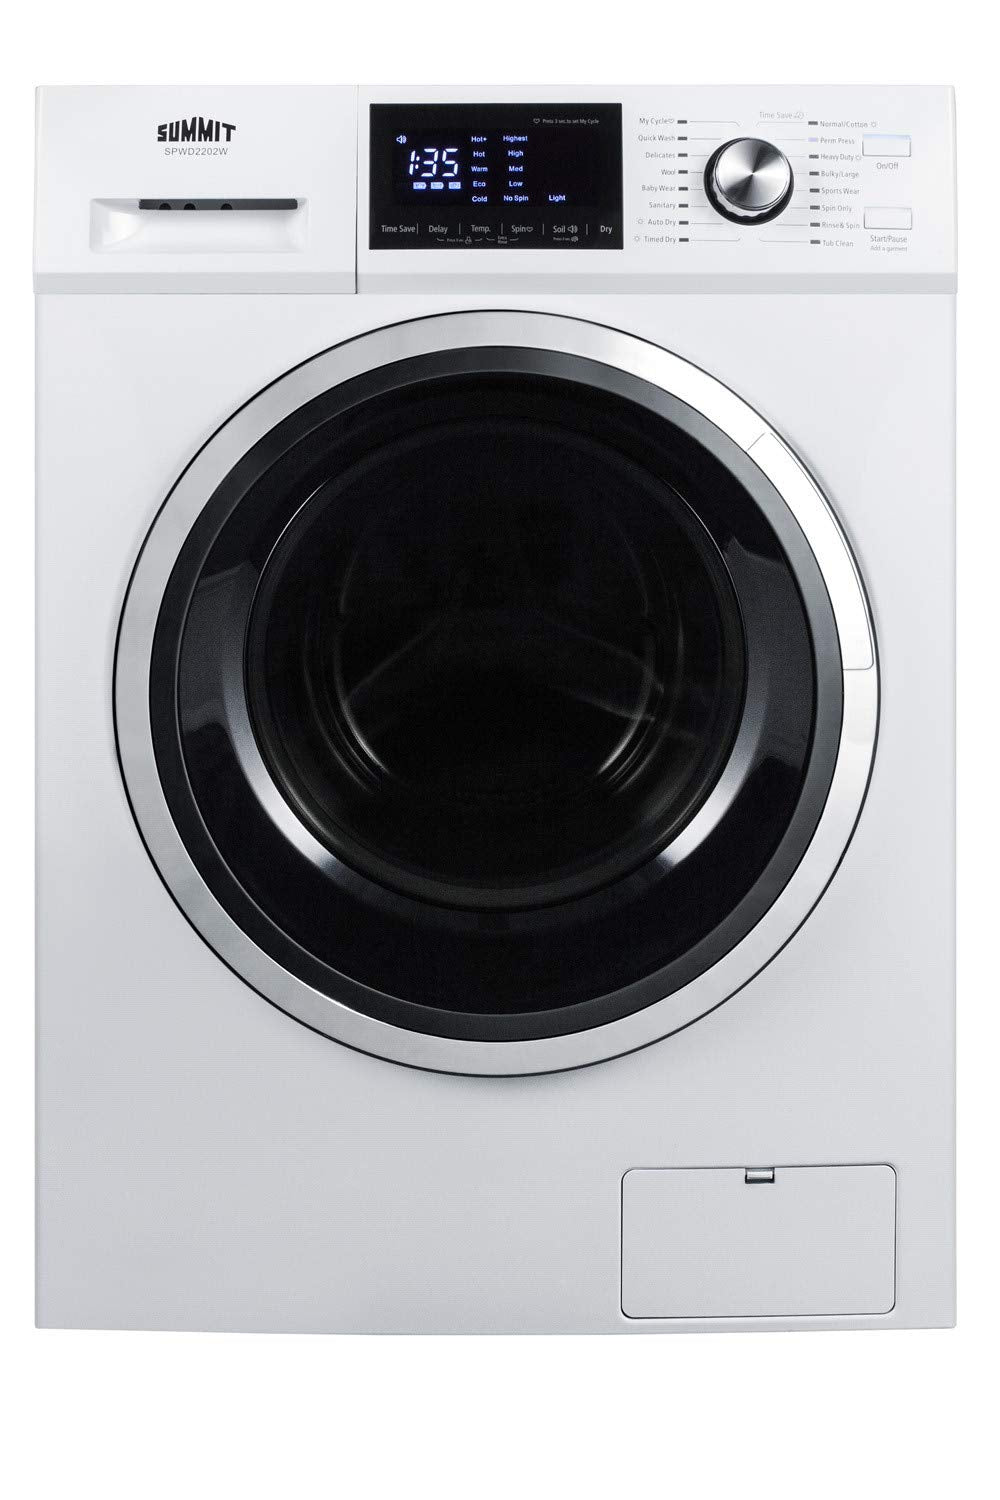 Summit SPWD2202W 24 Inch Wide 2.7 Cu. Ft. Front Loading Washer/Dryer Combo